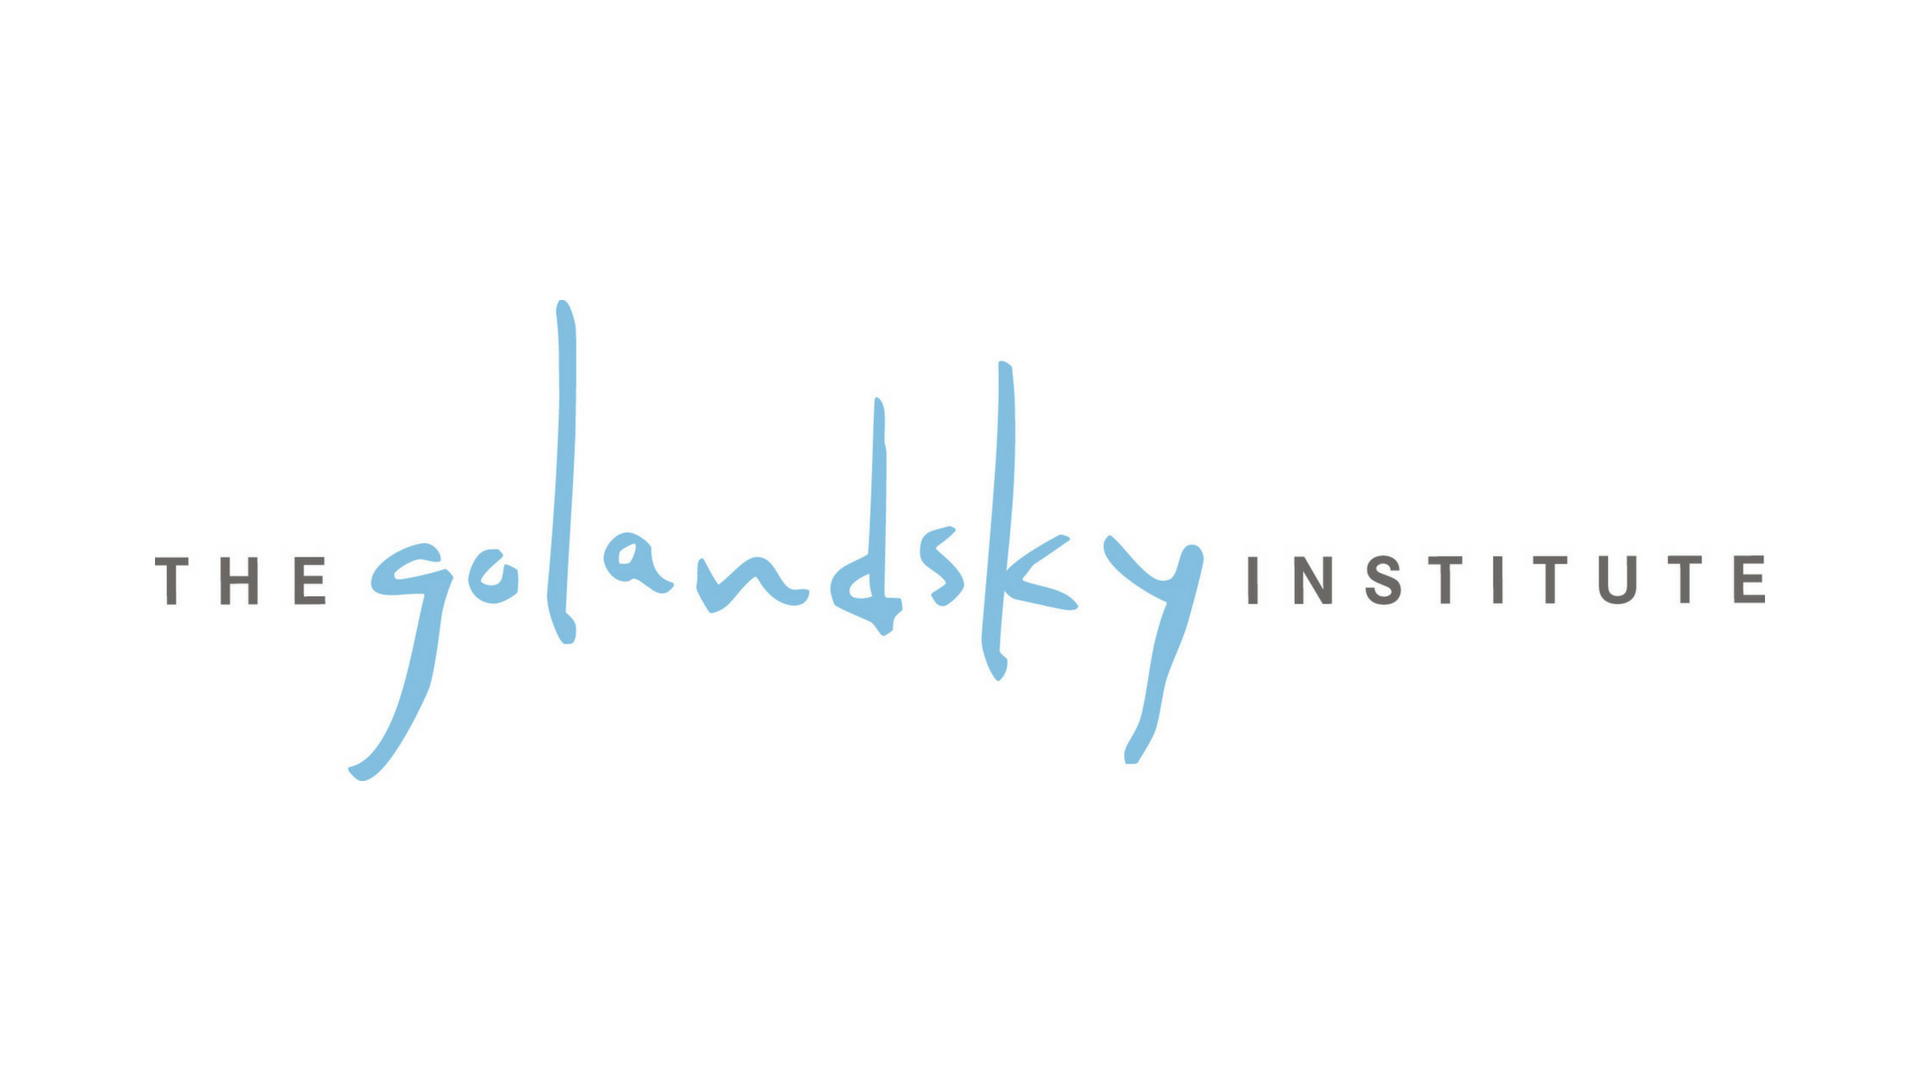 The Golandsky Institute